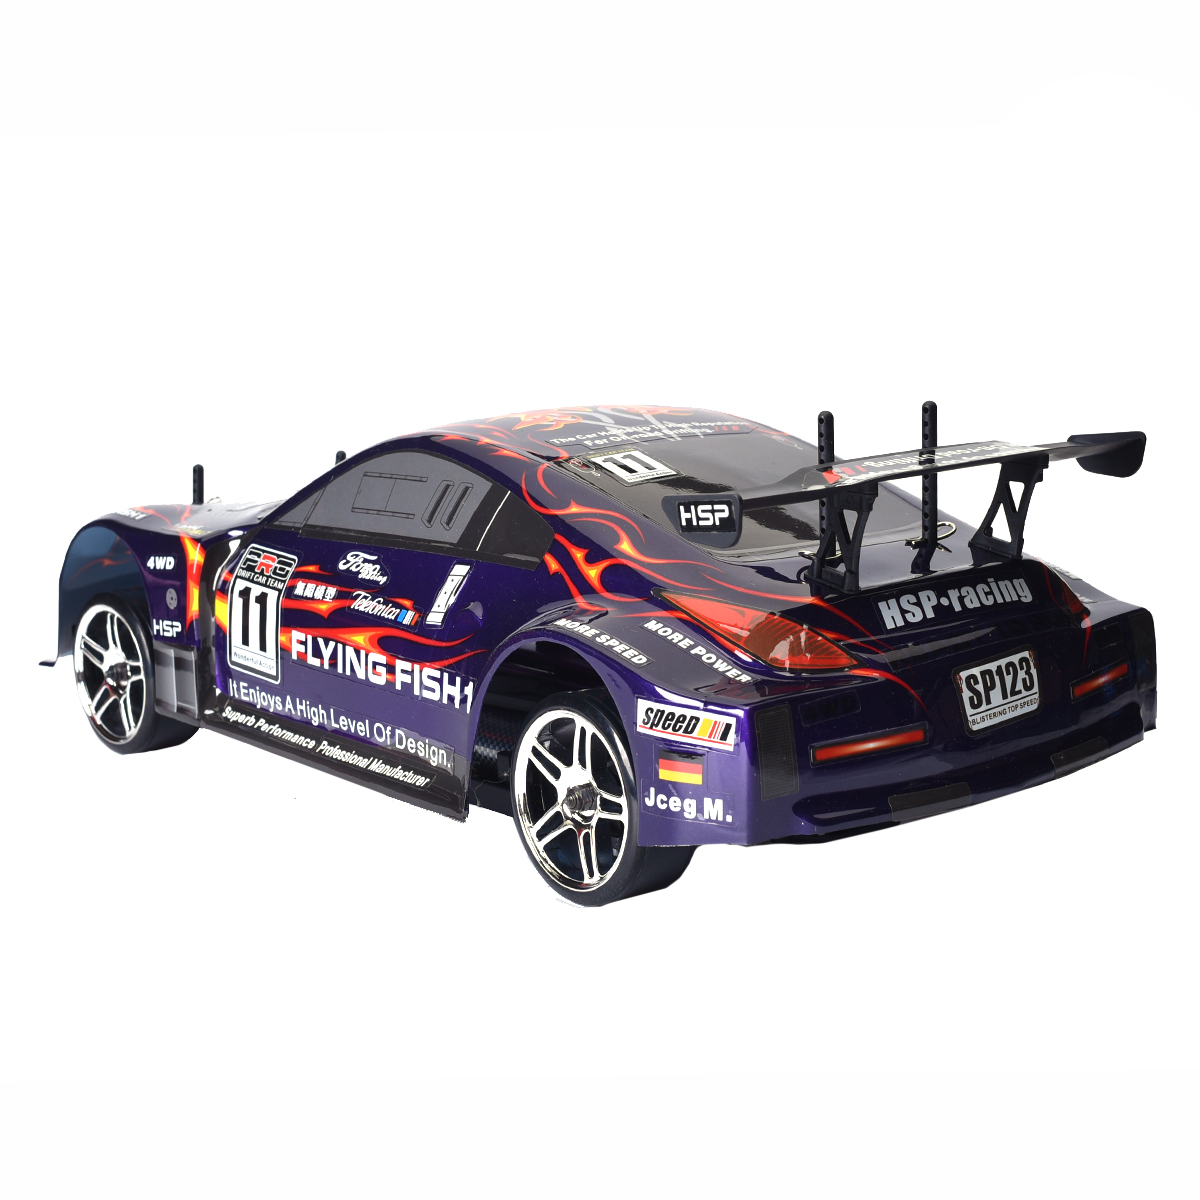 HSP 94123 Rc Drift Car High Speed Flying Fish Drifting 4wd